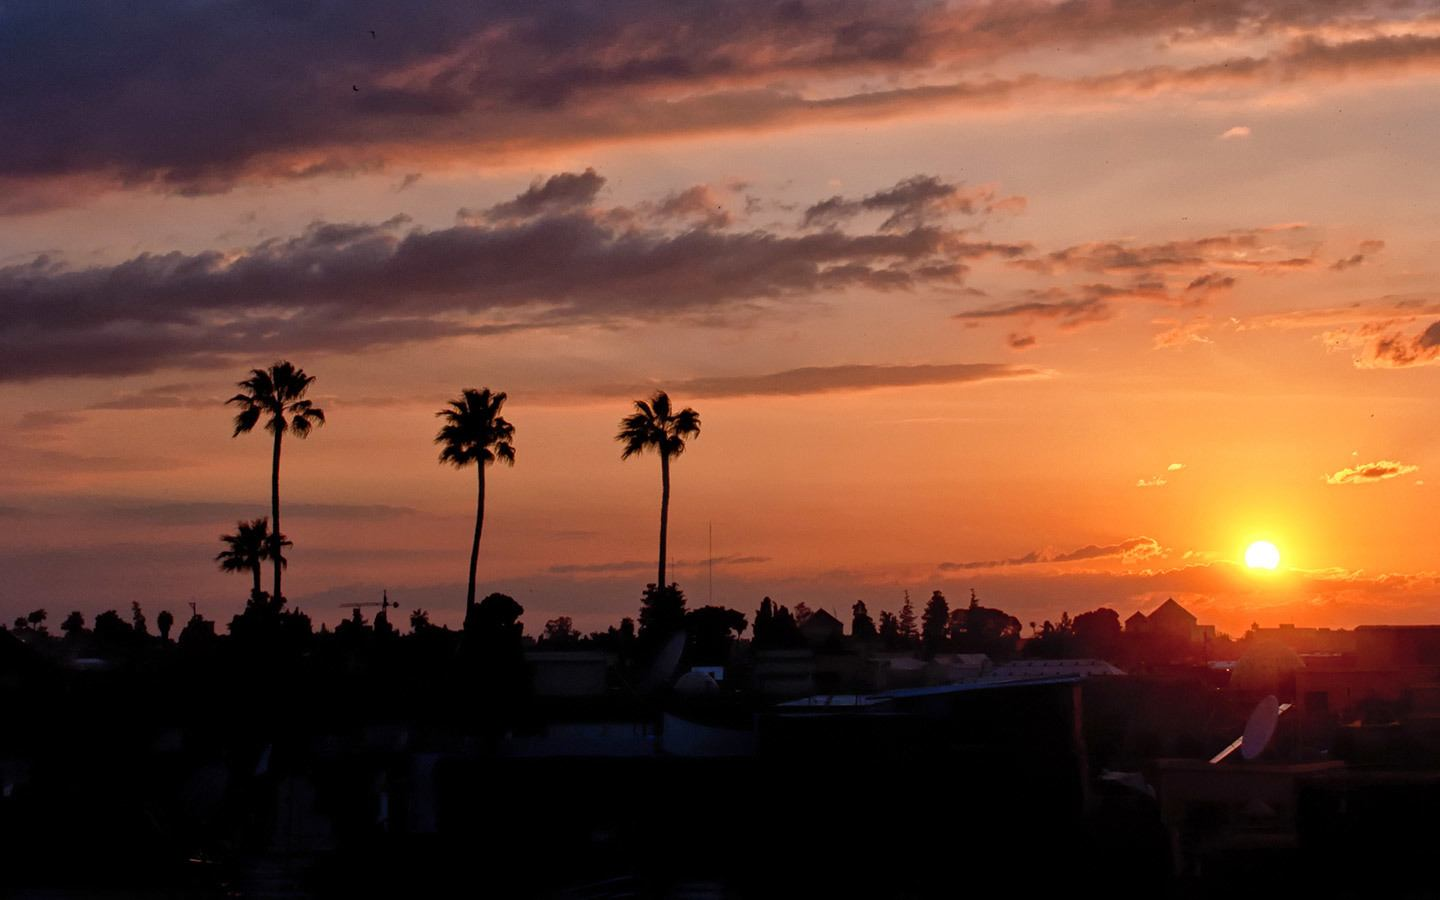 Sunset over the medina in Marrakech from Riad Capaldi roof terrace